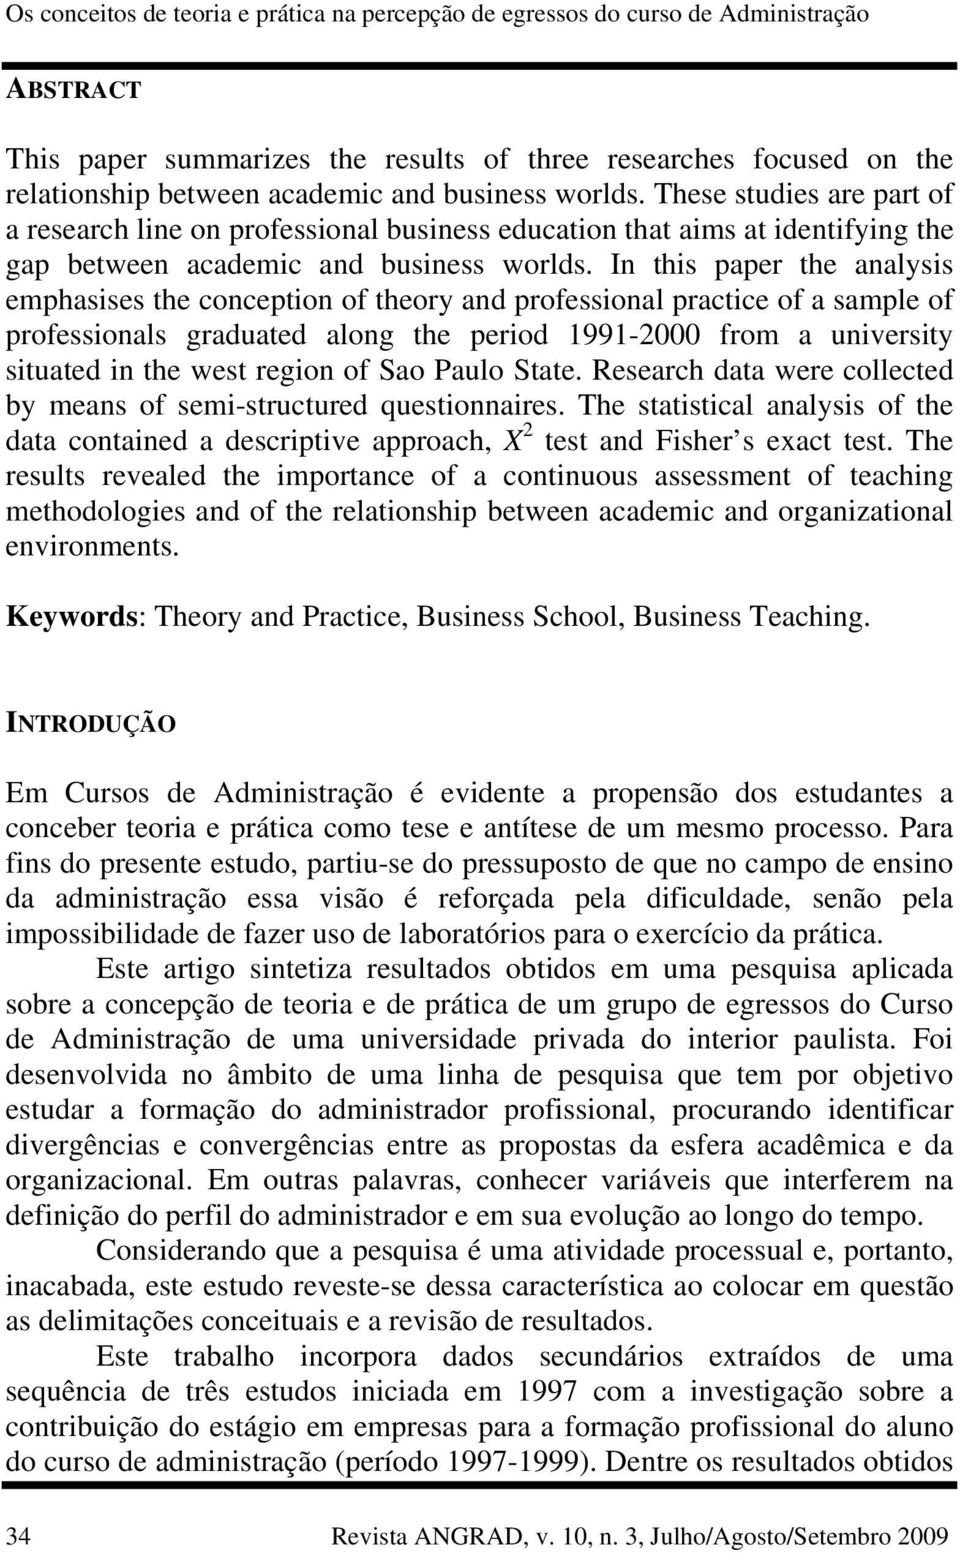 In this paper the analysis emphasises the conception of theory and professional practice of a sample of professionals graduated along the period 1991-2000 from a university situated in the west